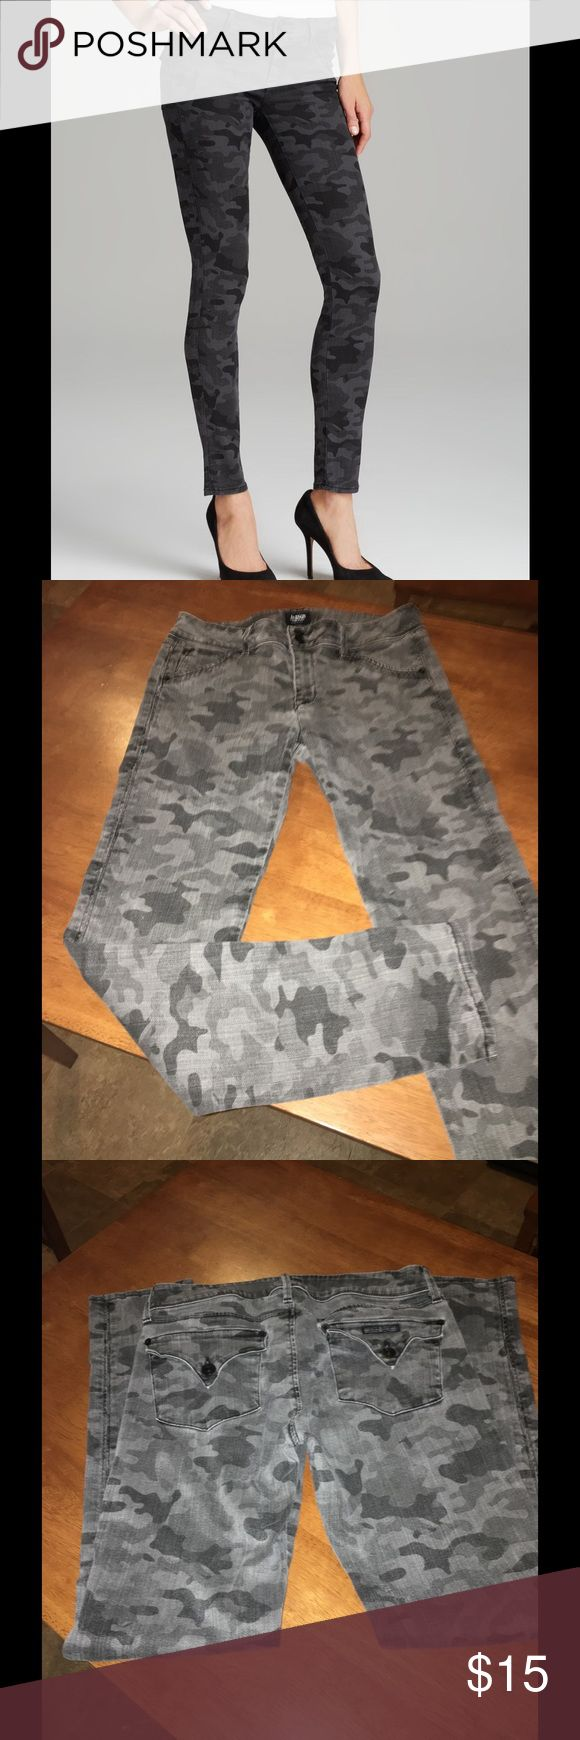 Hudson Vintage Grey Camo Skinny Jeans Size 30 Hudson skinny jeans.  They are the Colin Vintage Grey Camo Jeans. These gave a muted color, but that is the design.  Size 30.  Inseam is 30.5 inches.  Important:   All items are freshly laundered as applicable prior to shipping (new items and shoes excluded).  Not all my items are from pet/smoke free homes.  Price is reduced to reflect this!   Thank you for looking! Hudson Jeans Jeans Skinny